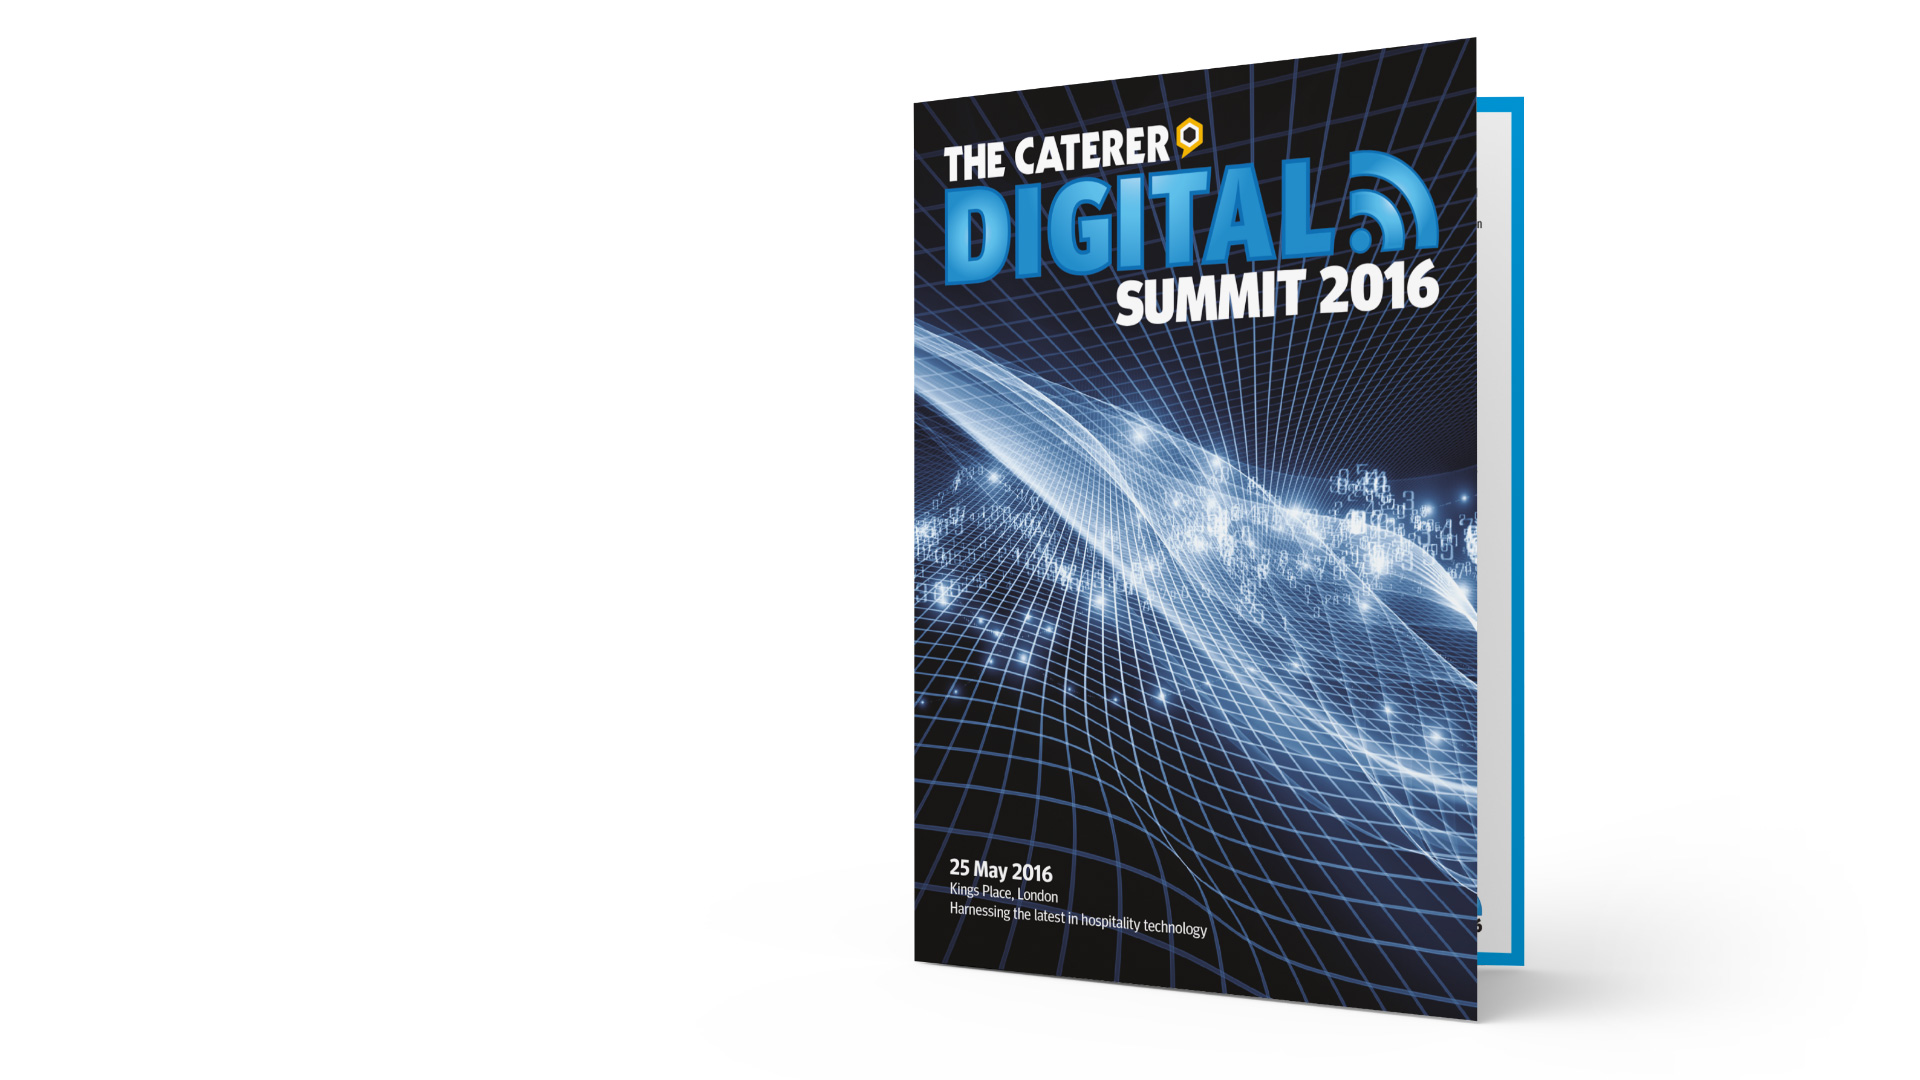 The Caterer Digital Summit Brochure Design By Louise Russell Design